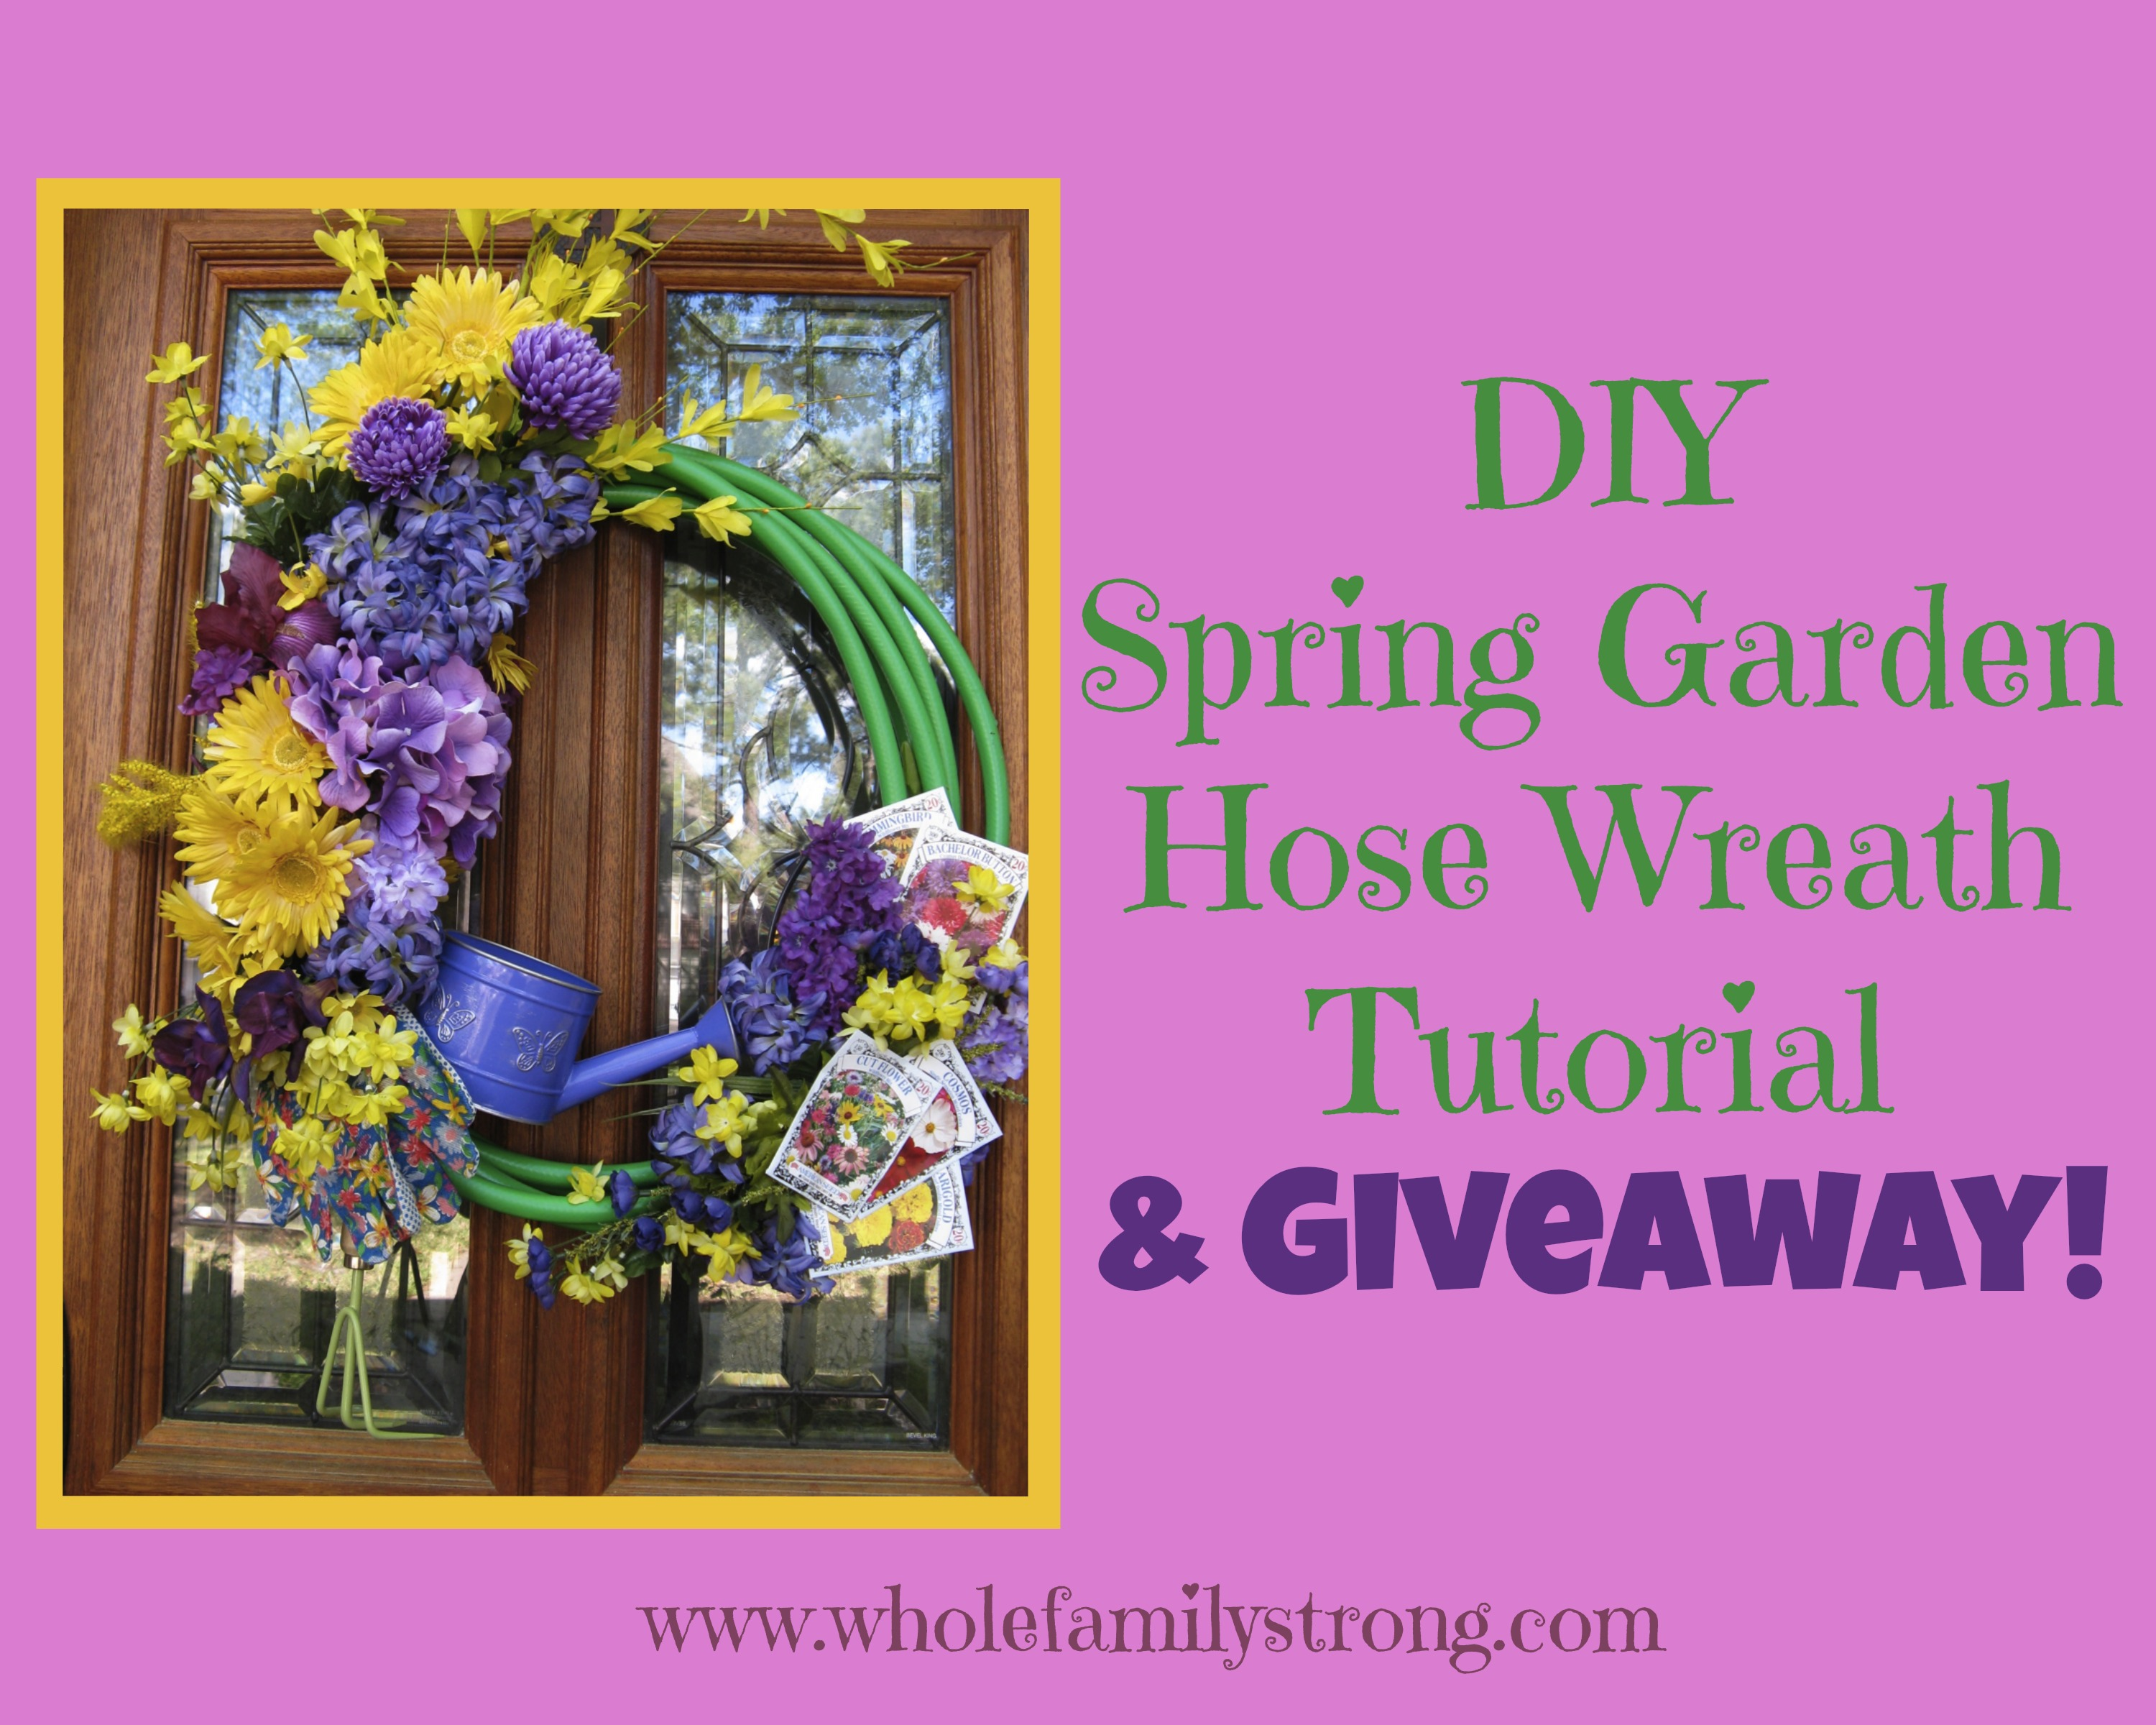 DIY Spring Garden Hose Wreath Tutorial {and Giveaway!}